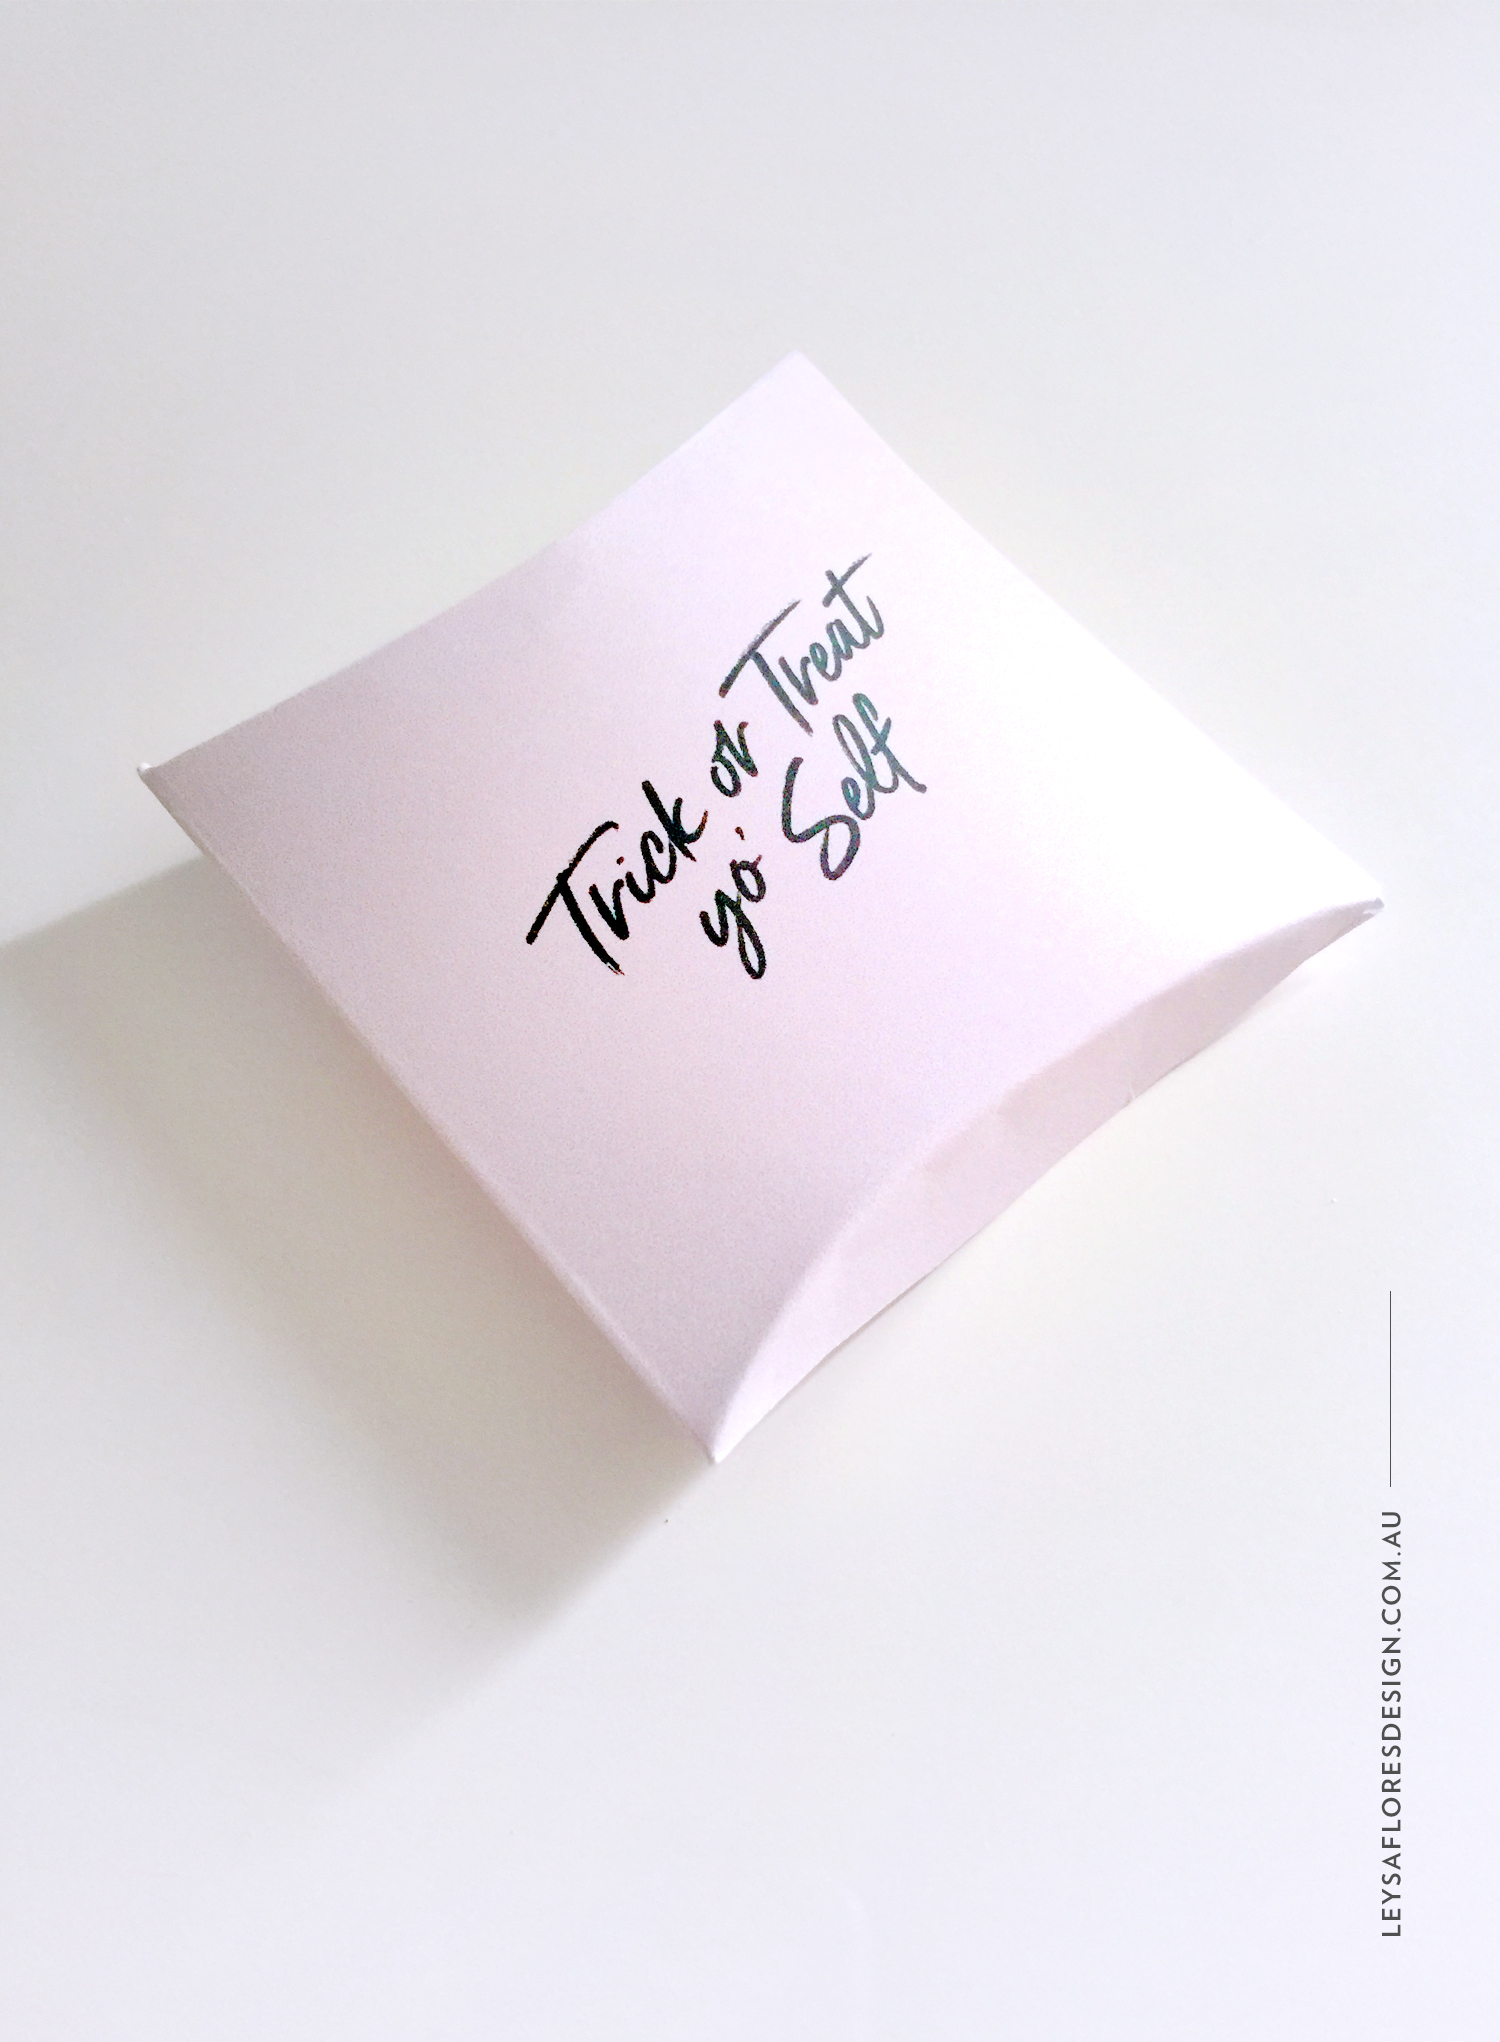 Free Halloween printable - Trick or treat yo' self - DIY pillow box / Leysa Flores Design